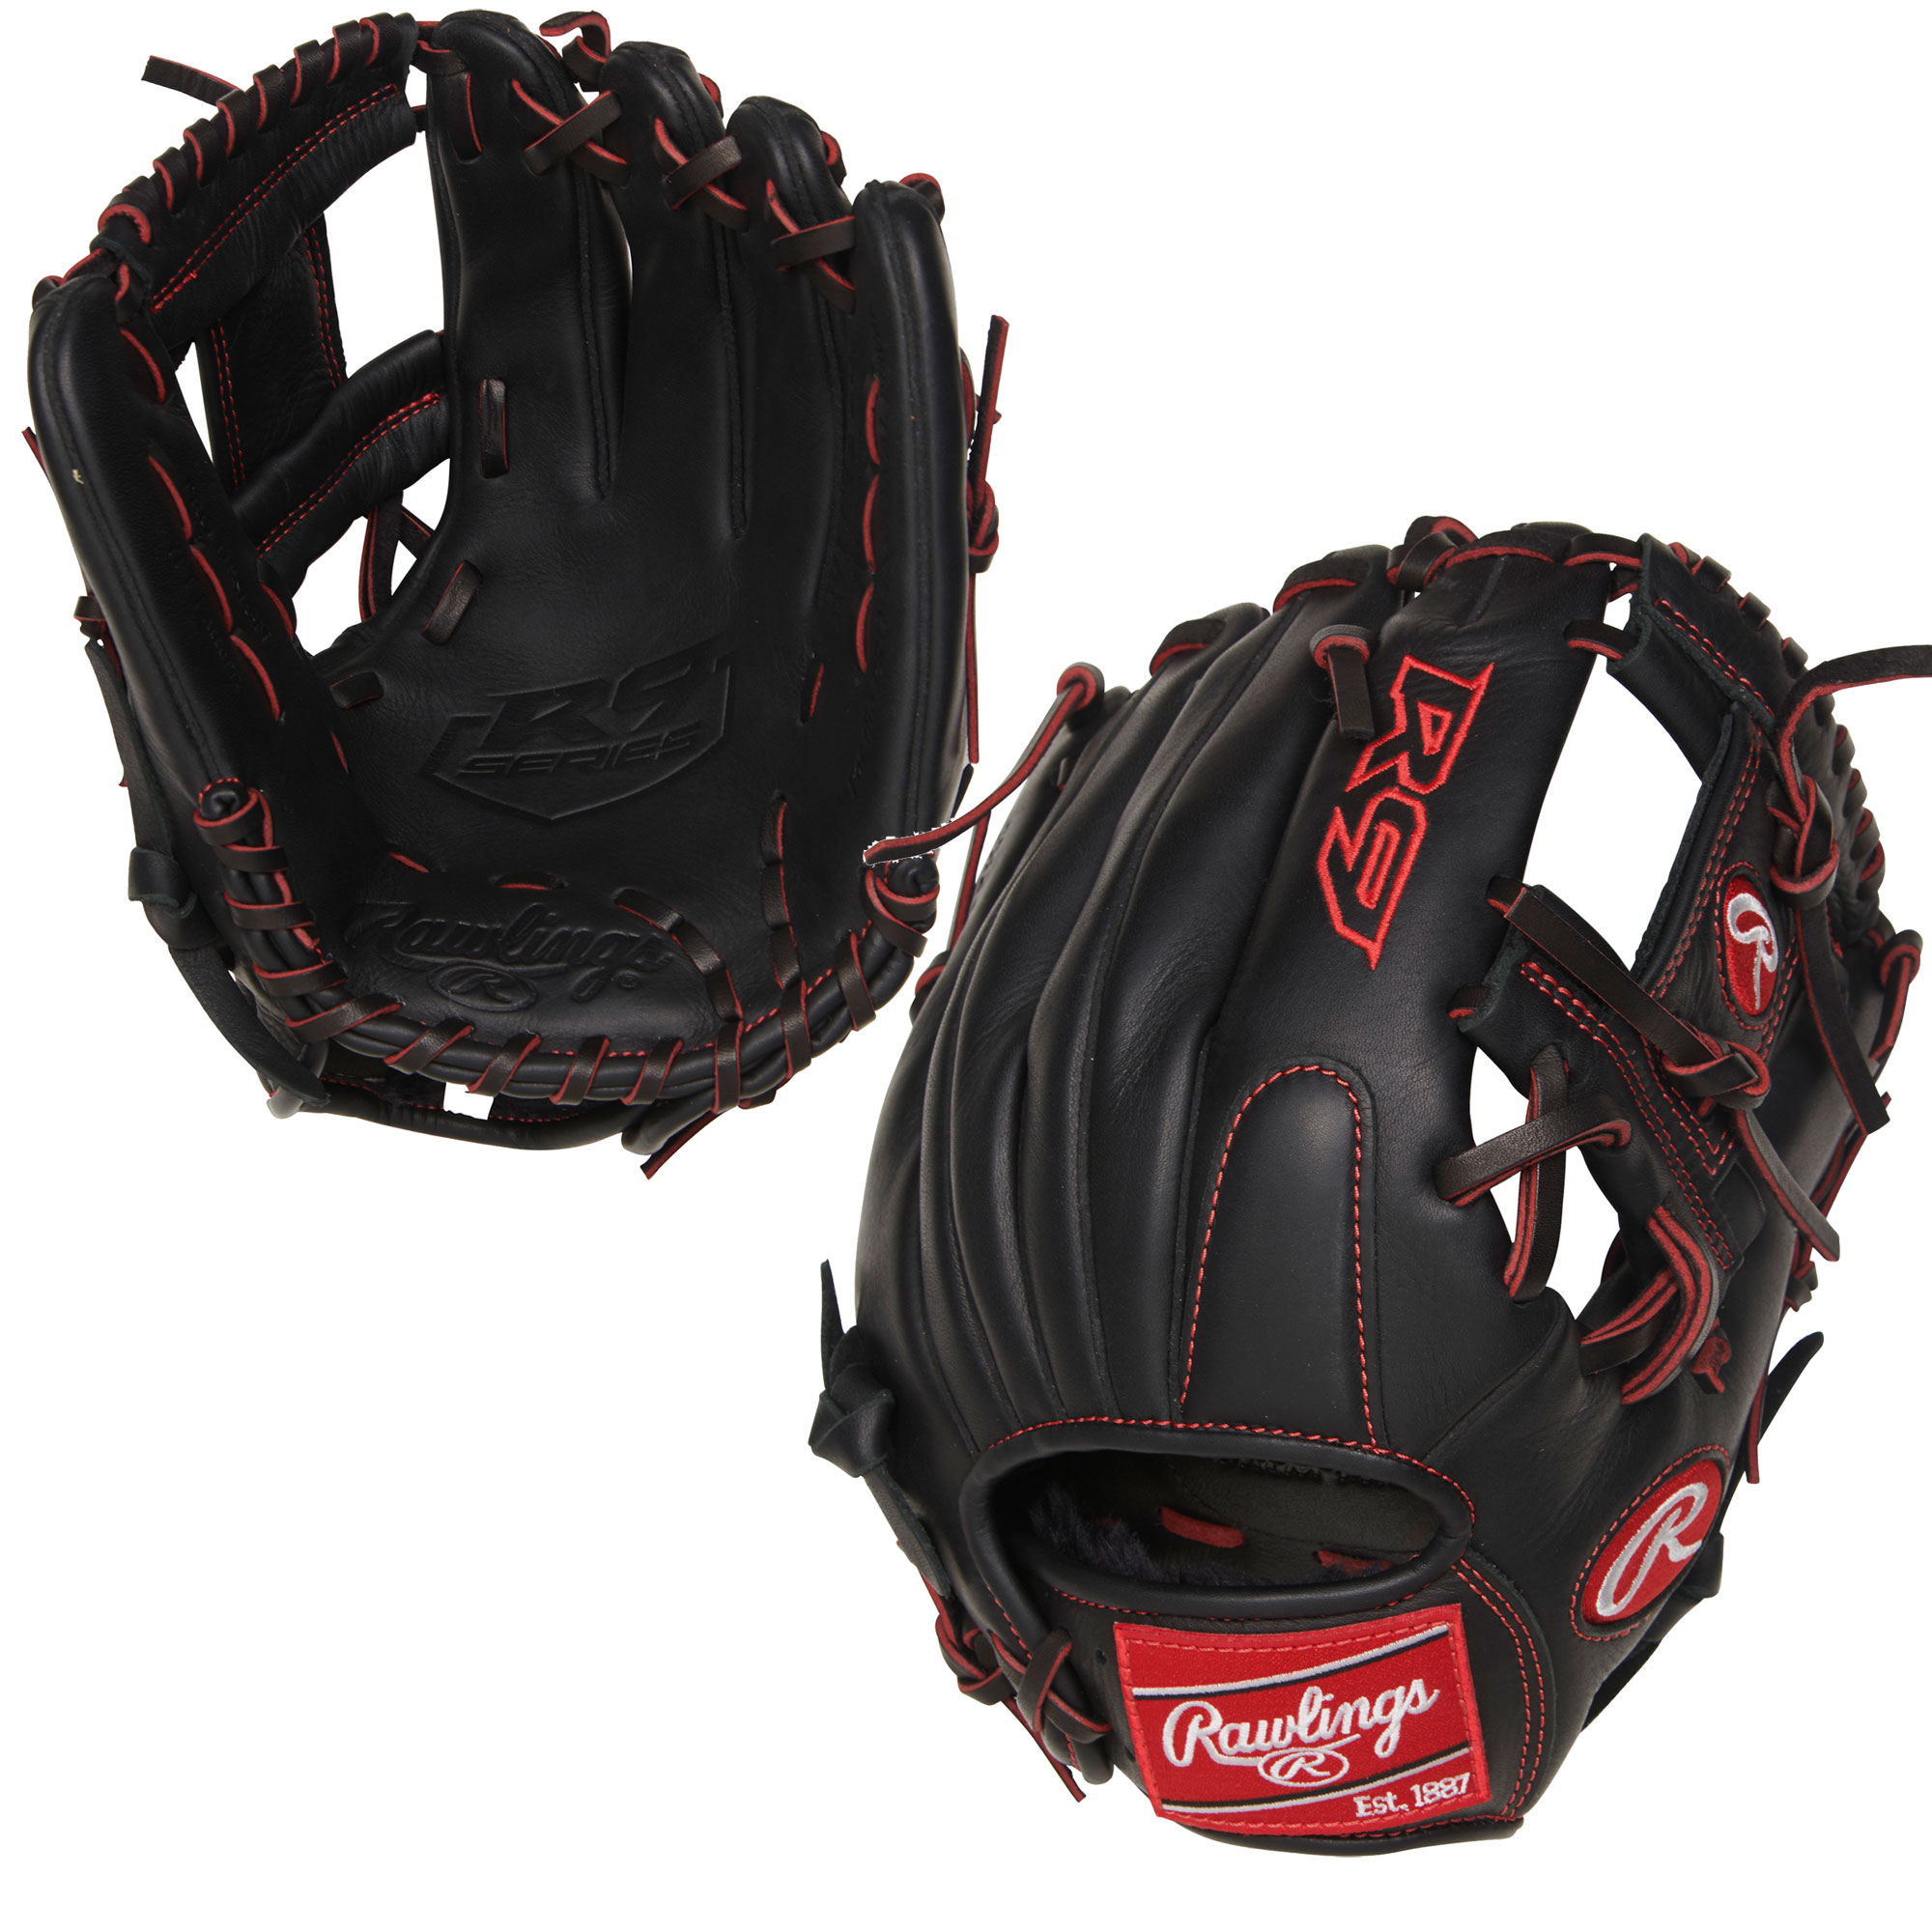 "Rawlings 11.25"" R9 Series Baseball Glove, Right Hand Throw"